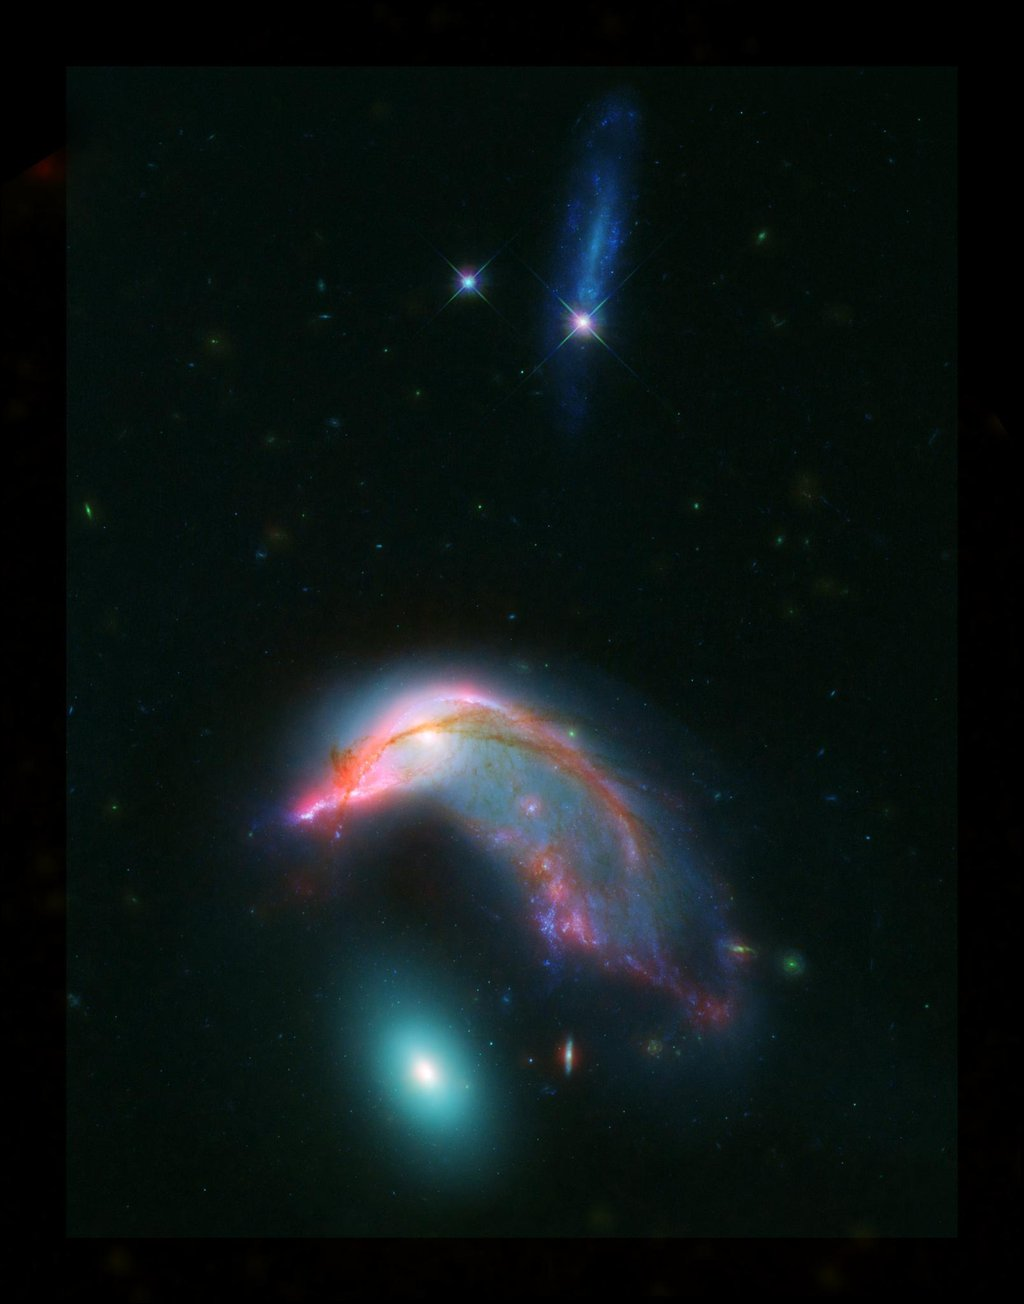 This image of distant interacting galaxies, known collectively as Arp 142, bears an uncanny resemblance to a penguin guarding an egg. Data from NASA's Spitzer and Hubble space telescopes have been combined to show these dramatic galaxies.